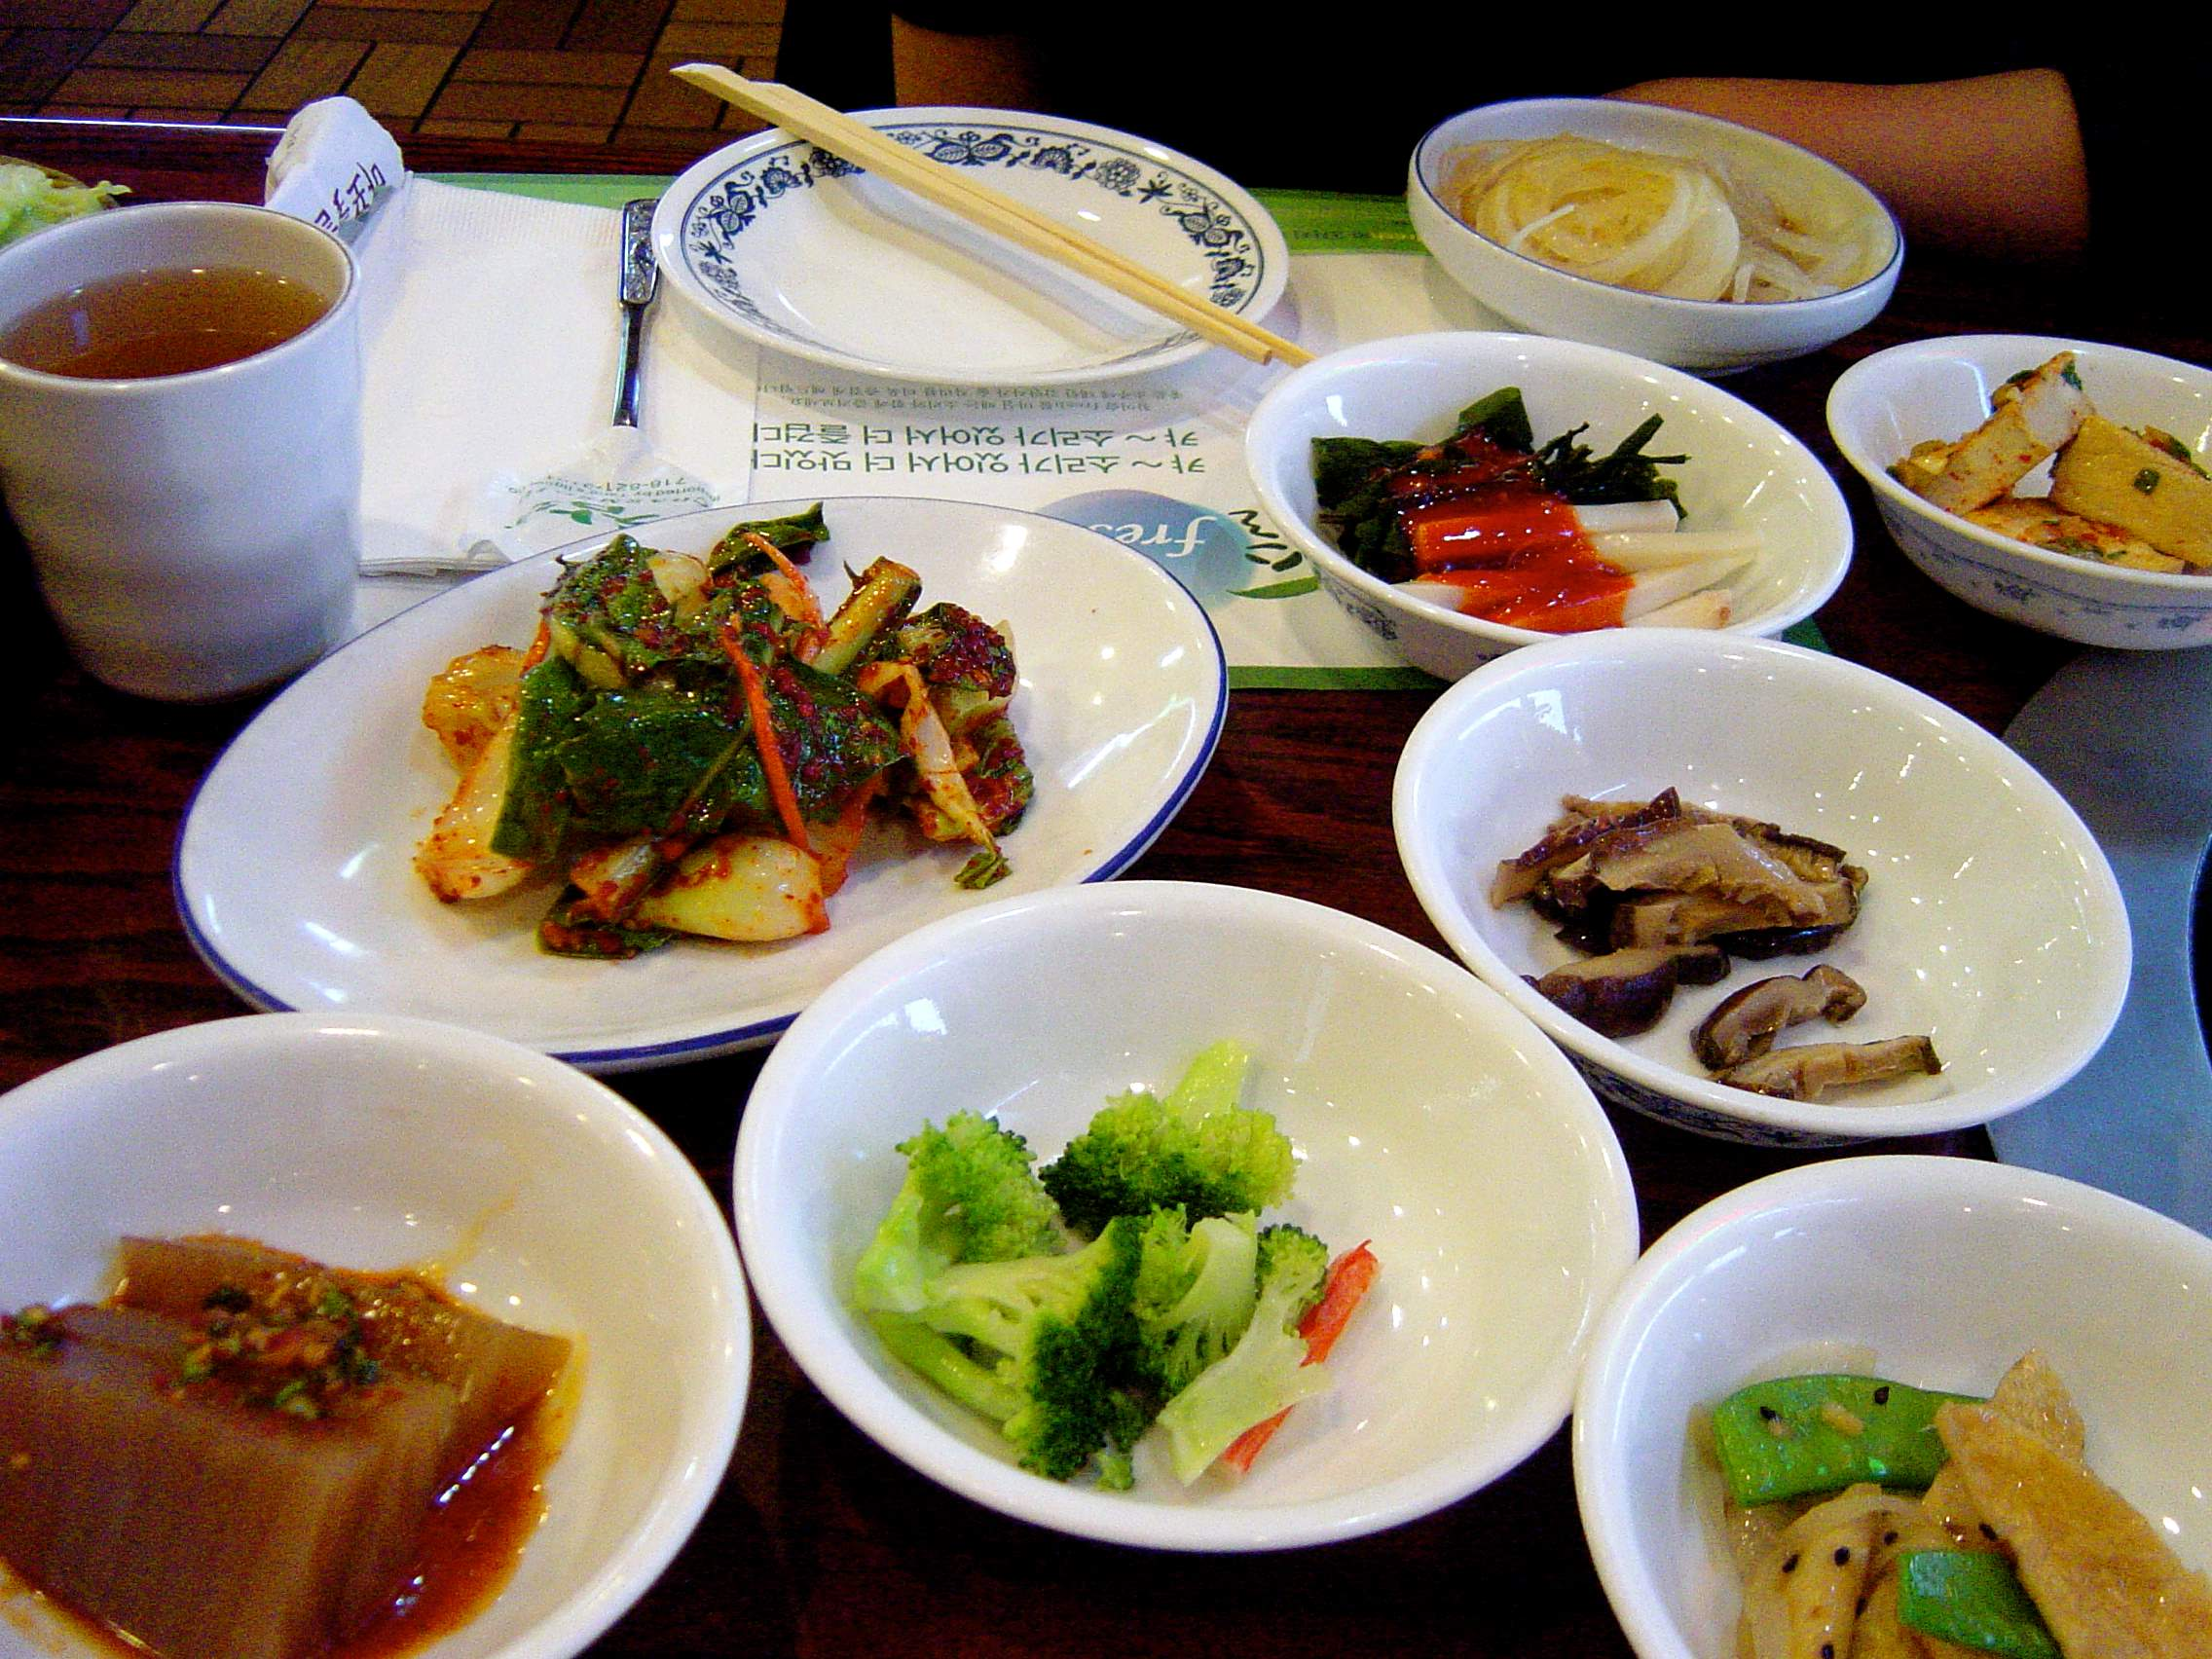 Banchan (Korean side dishes)